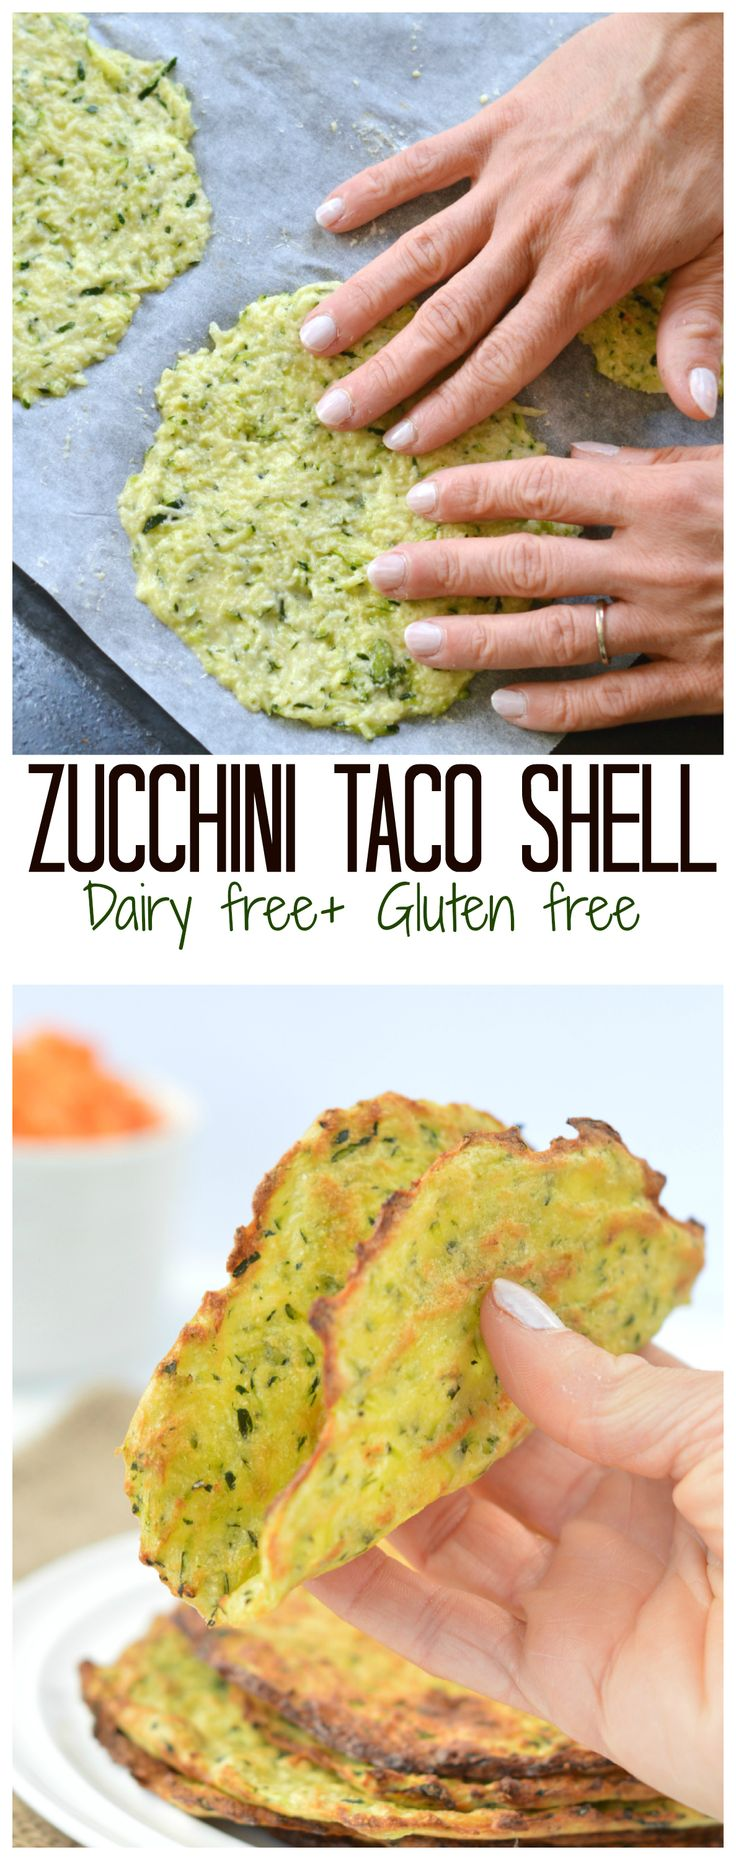 Those Zucchini Taco Shell are a super healthy soft taco idea for your next party. Thin, soft and won't crack